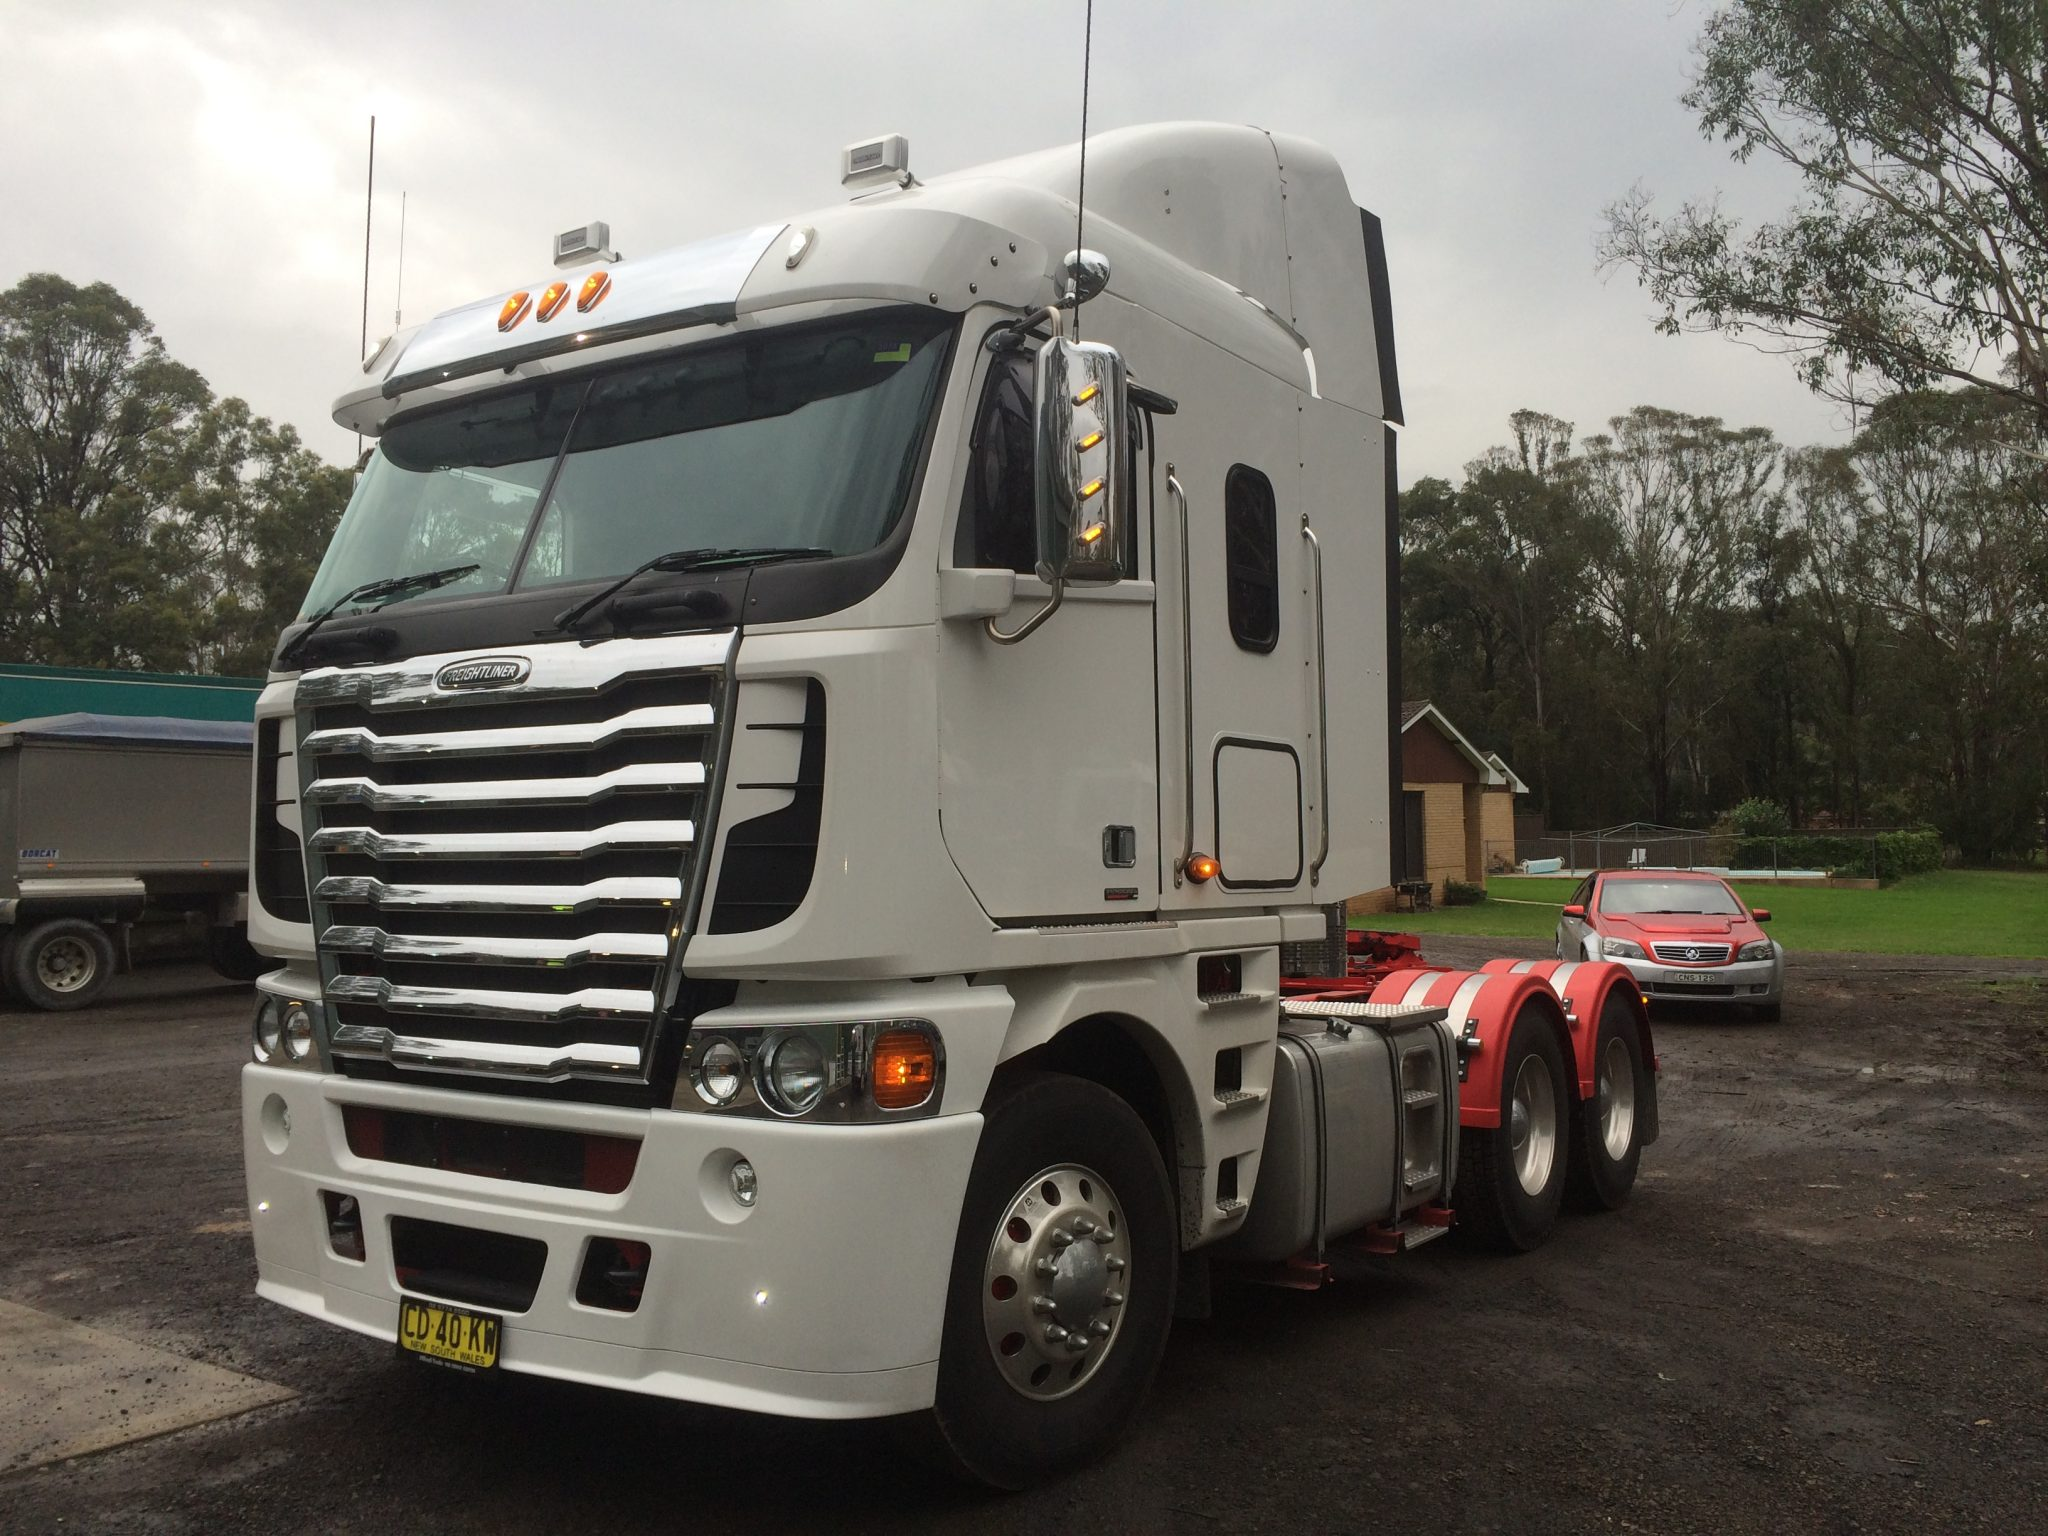 Truck repair services in Ingleburn